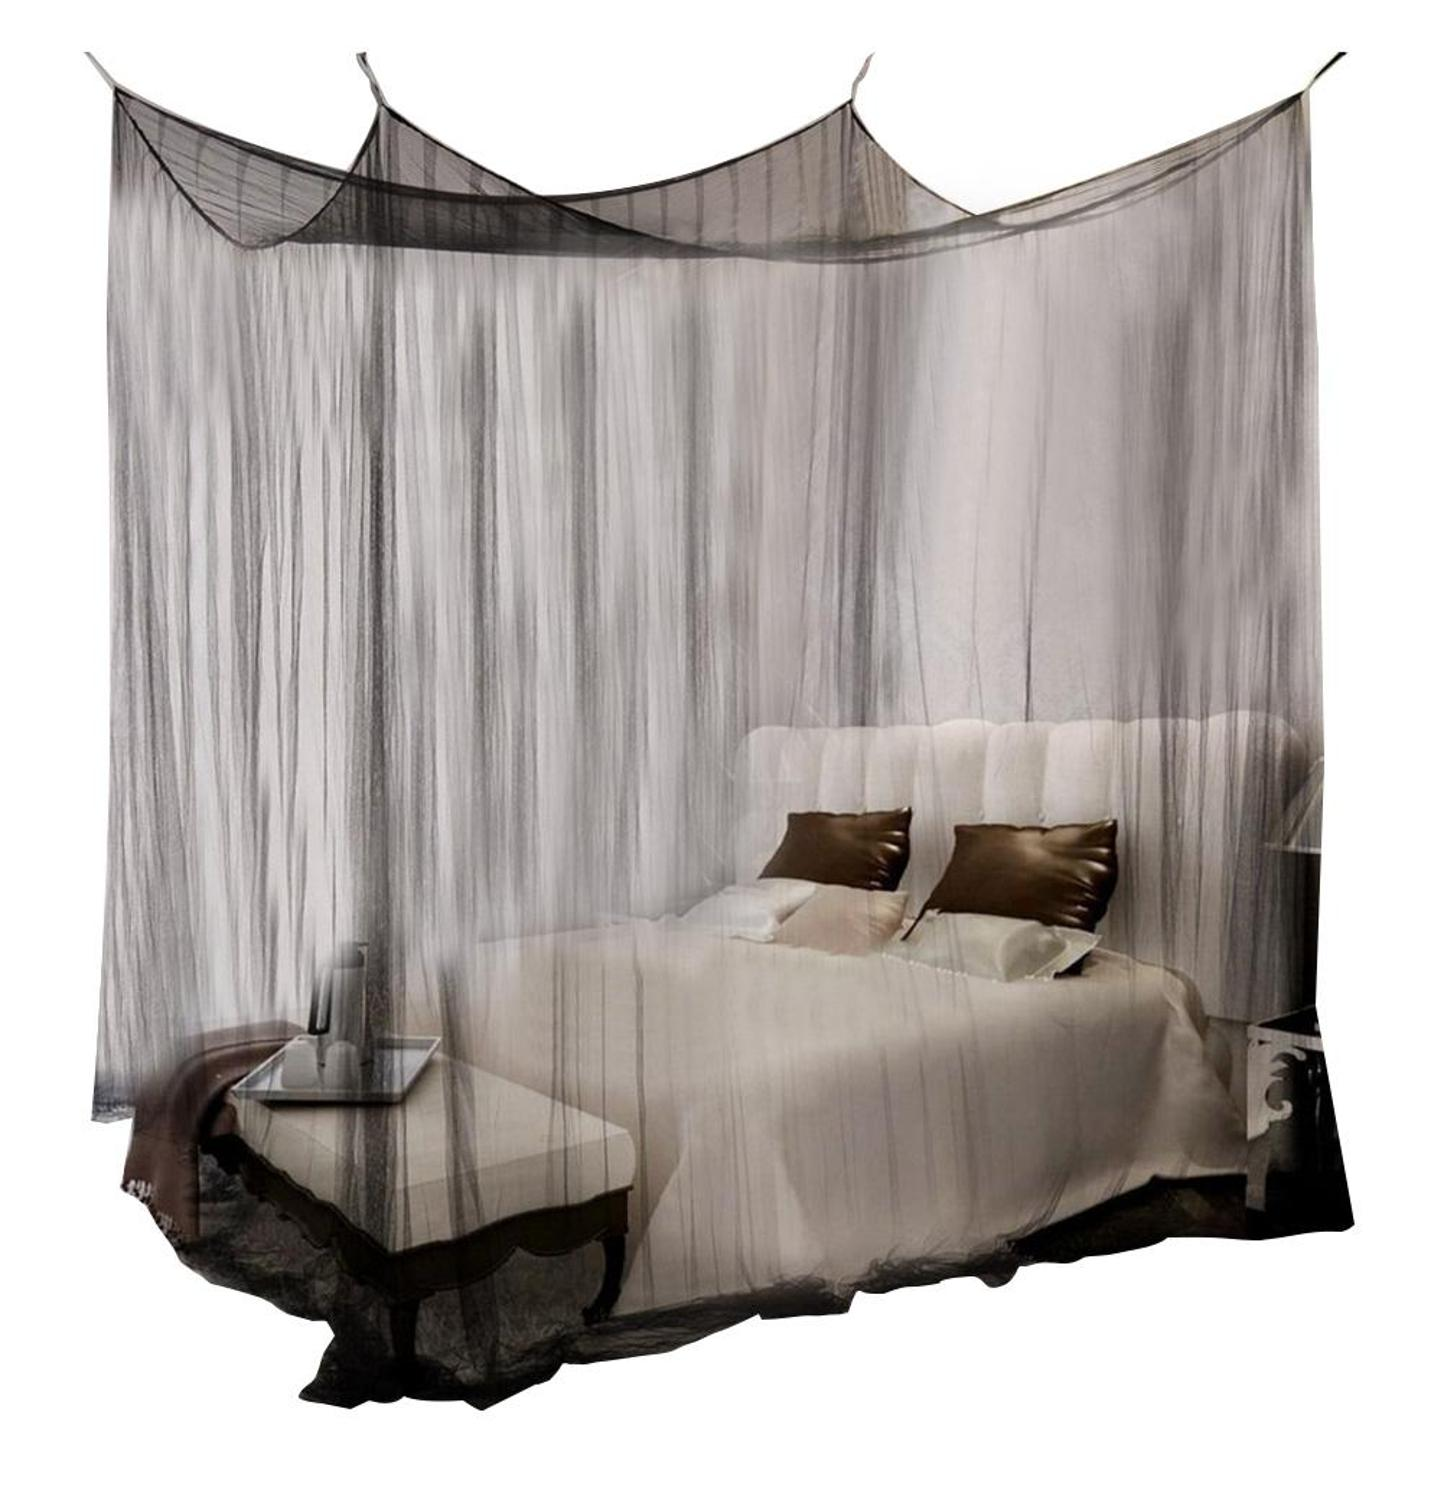 Zerodis Mosquito Net Black White For Double Four Corner Bed  Post Bed Canopy Mosquito Net Full Queen King Size Bedding|Mosquito Net|   - AliExpress